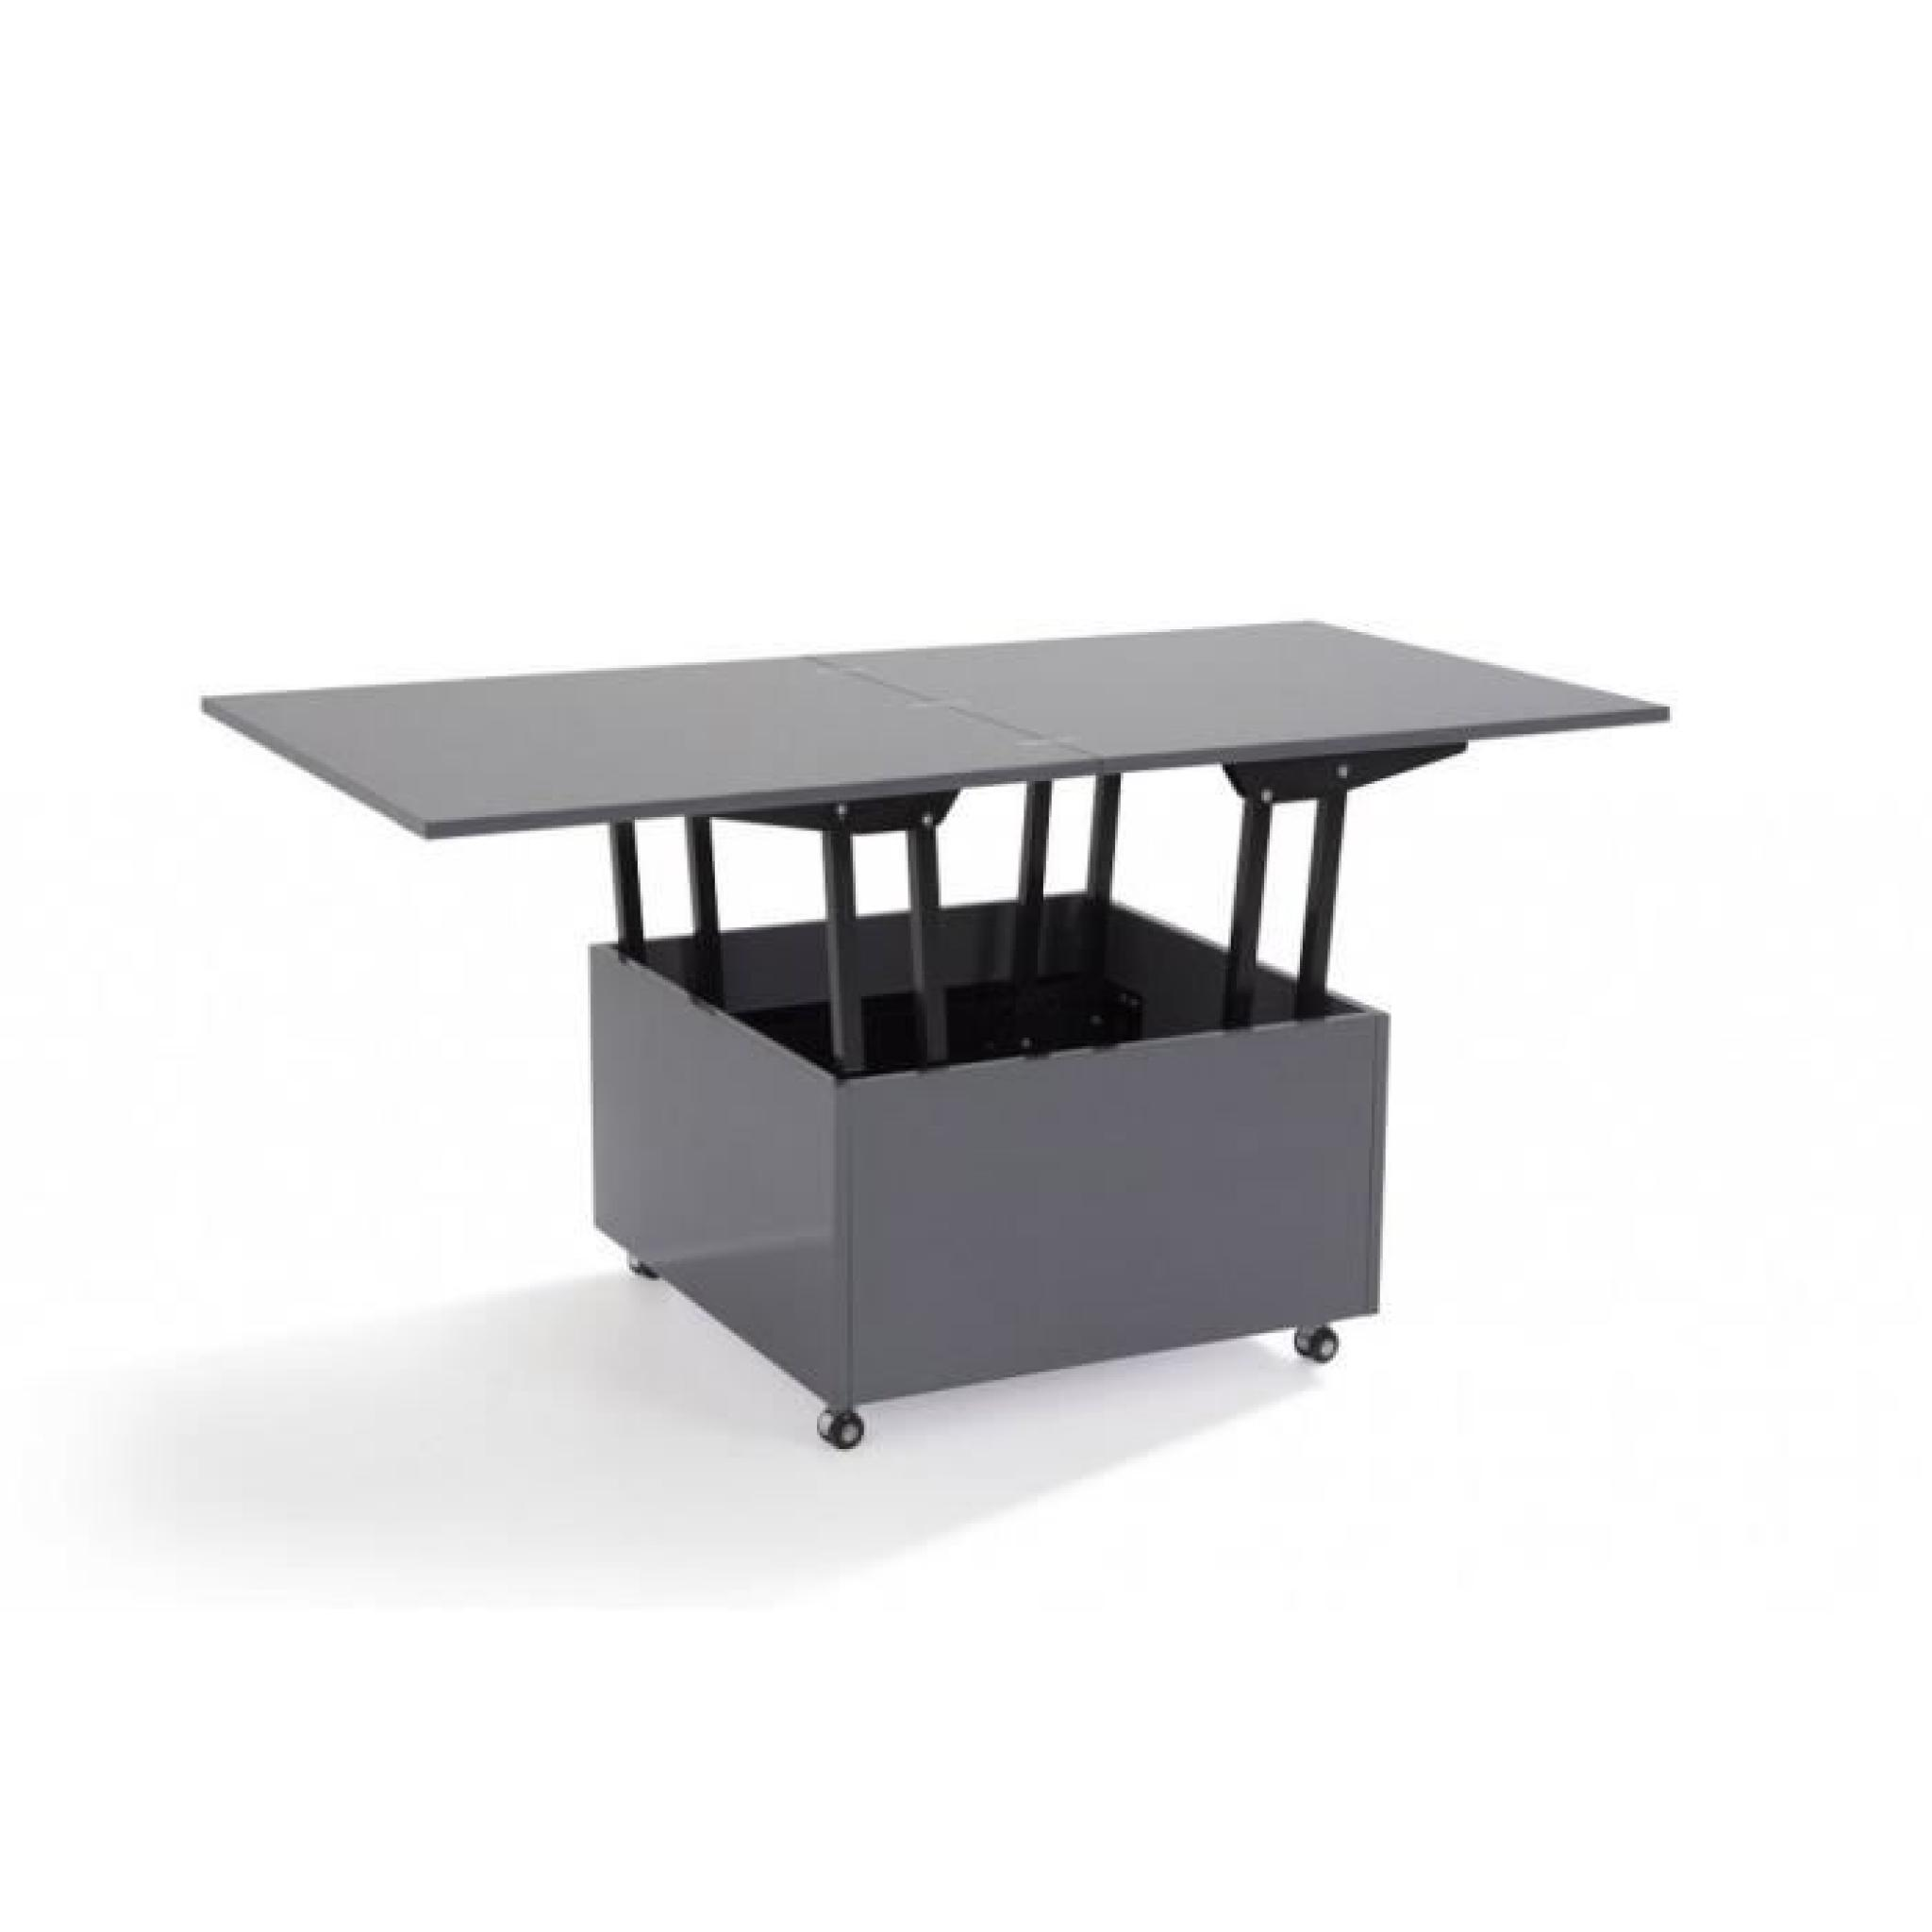 Table basse relevable blanche cdiscount